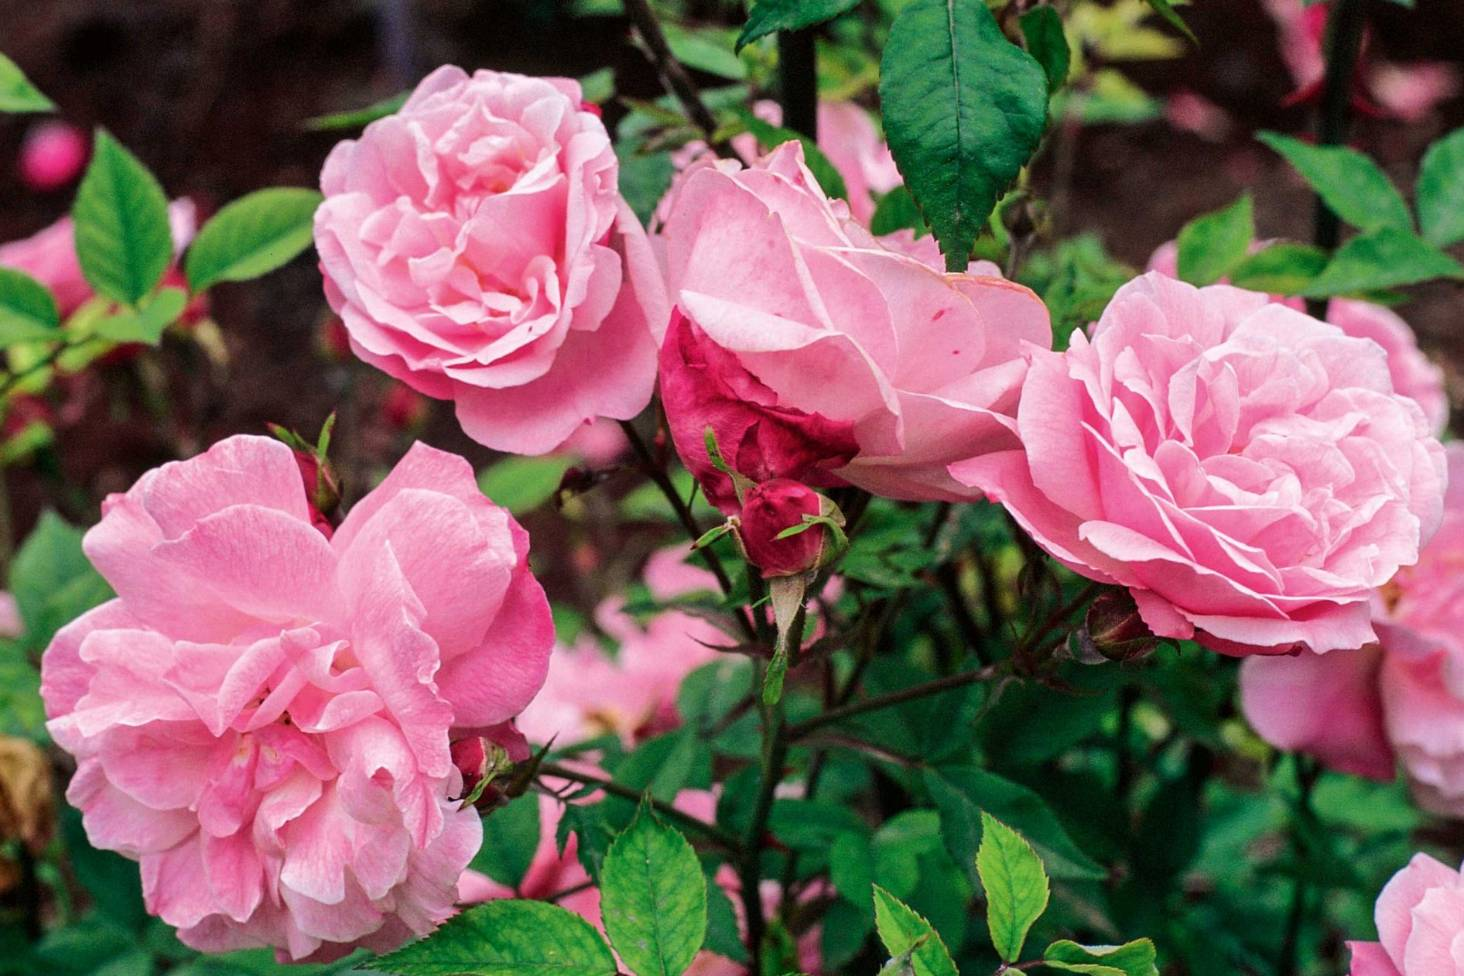 Stock-rose: planting and care are not difficult